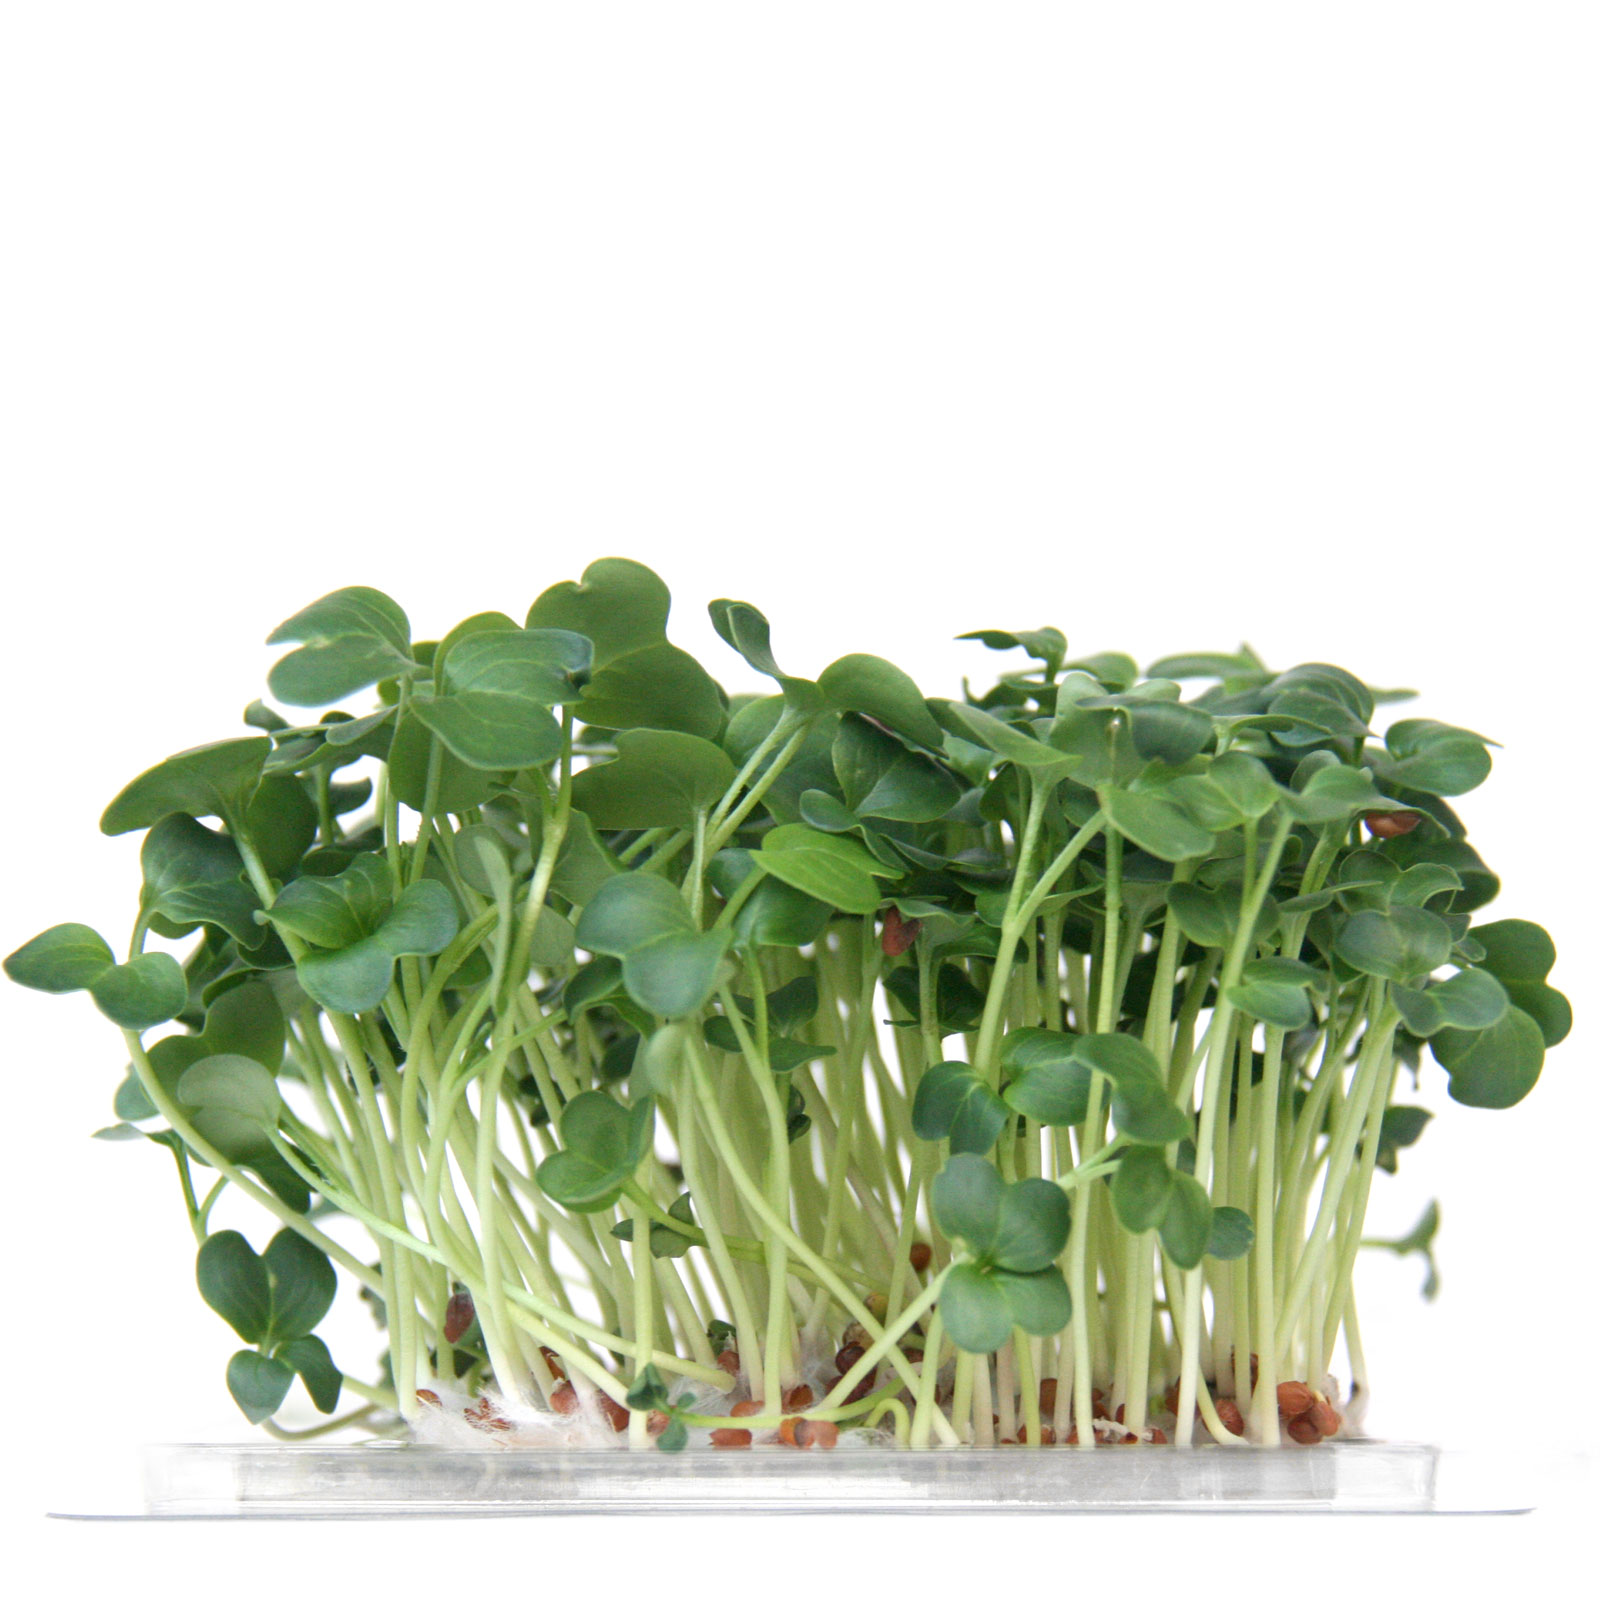 InstaGreen Microgreen cup with Green Daikon